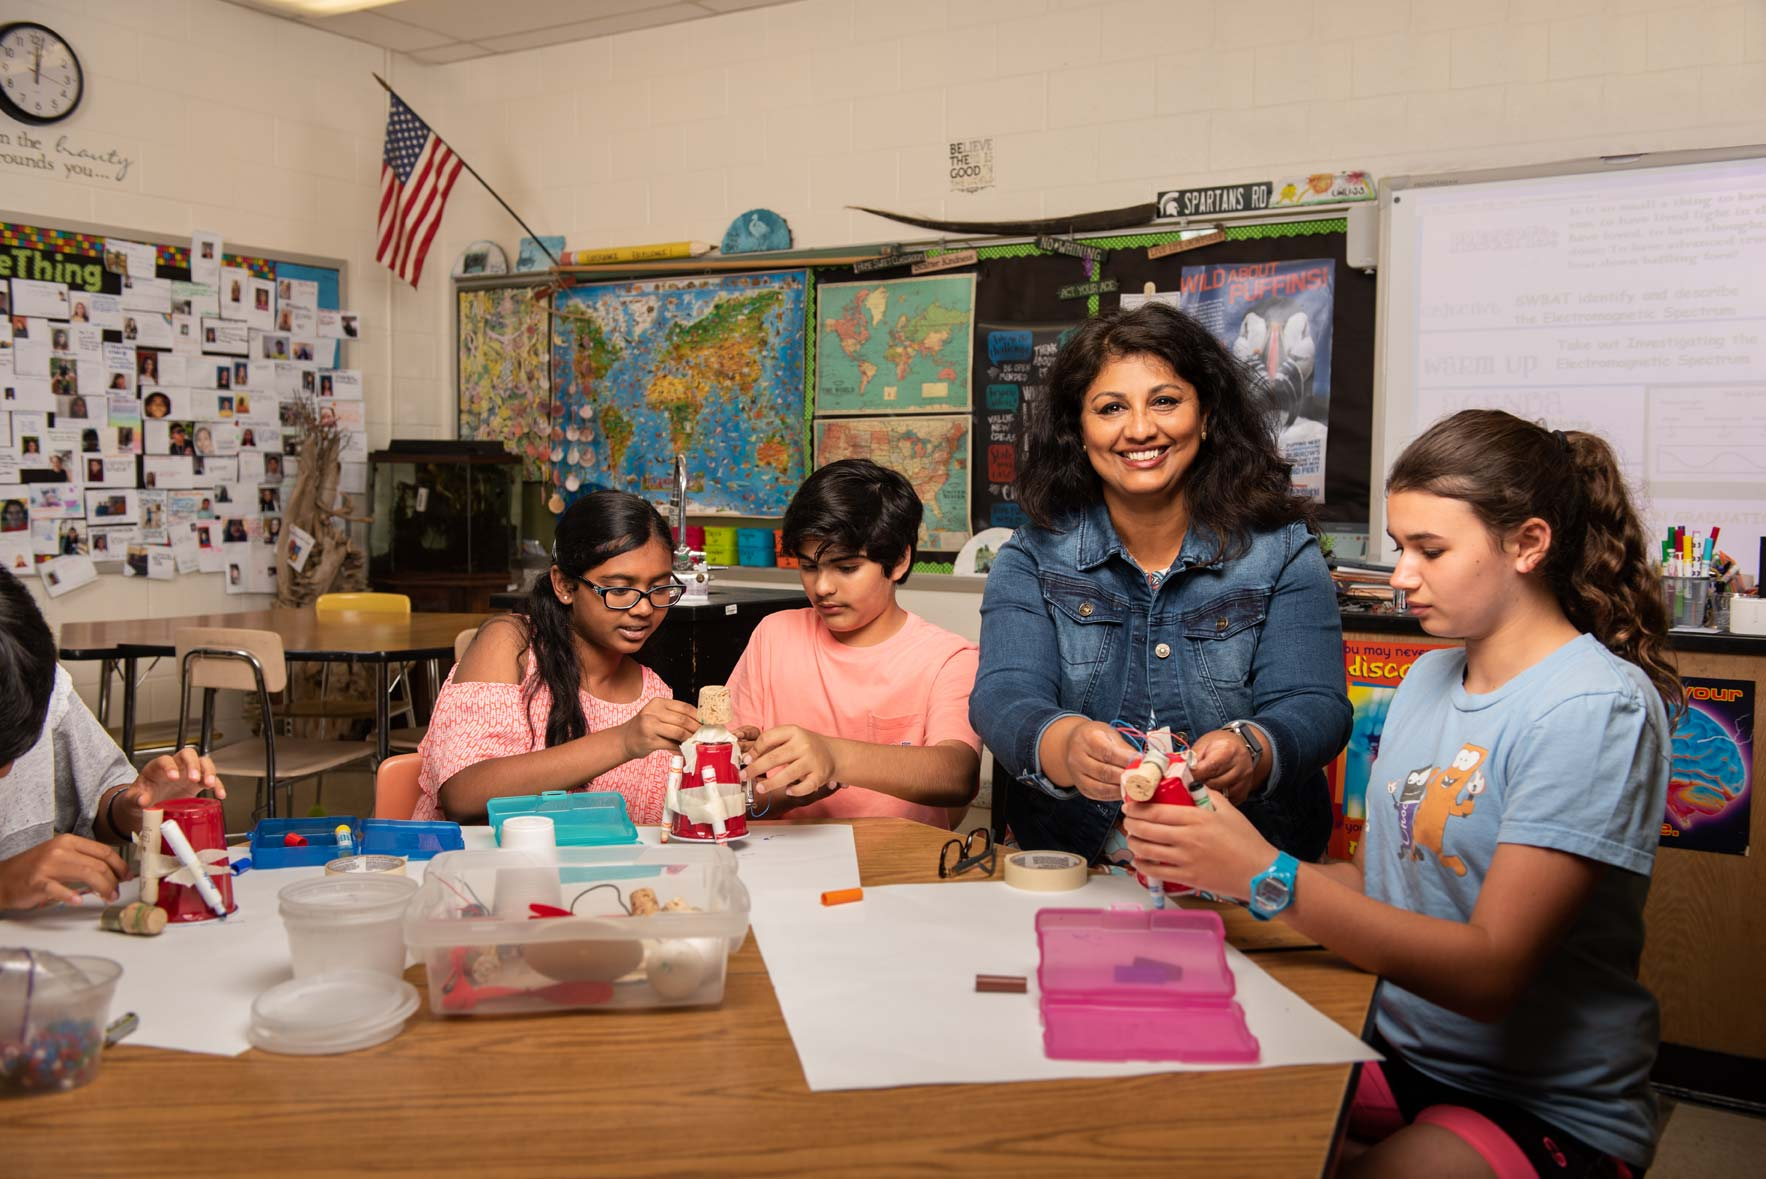 A science teacher smiles at the camera as she helps a table of students with their projects